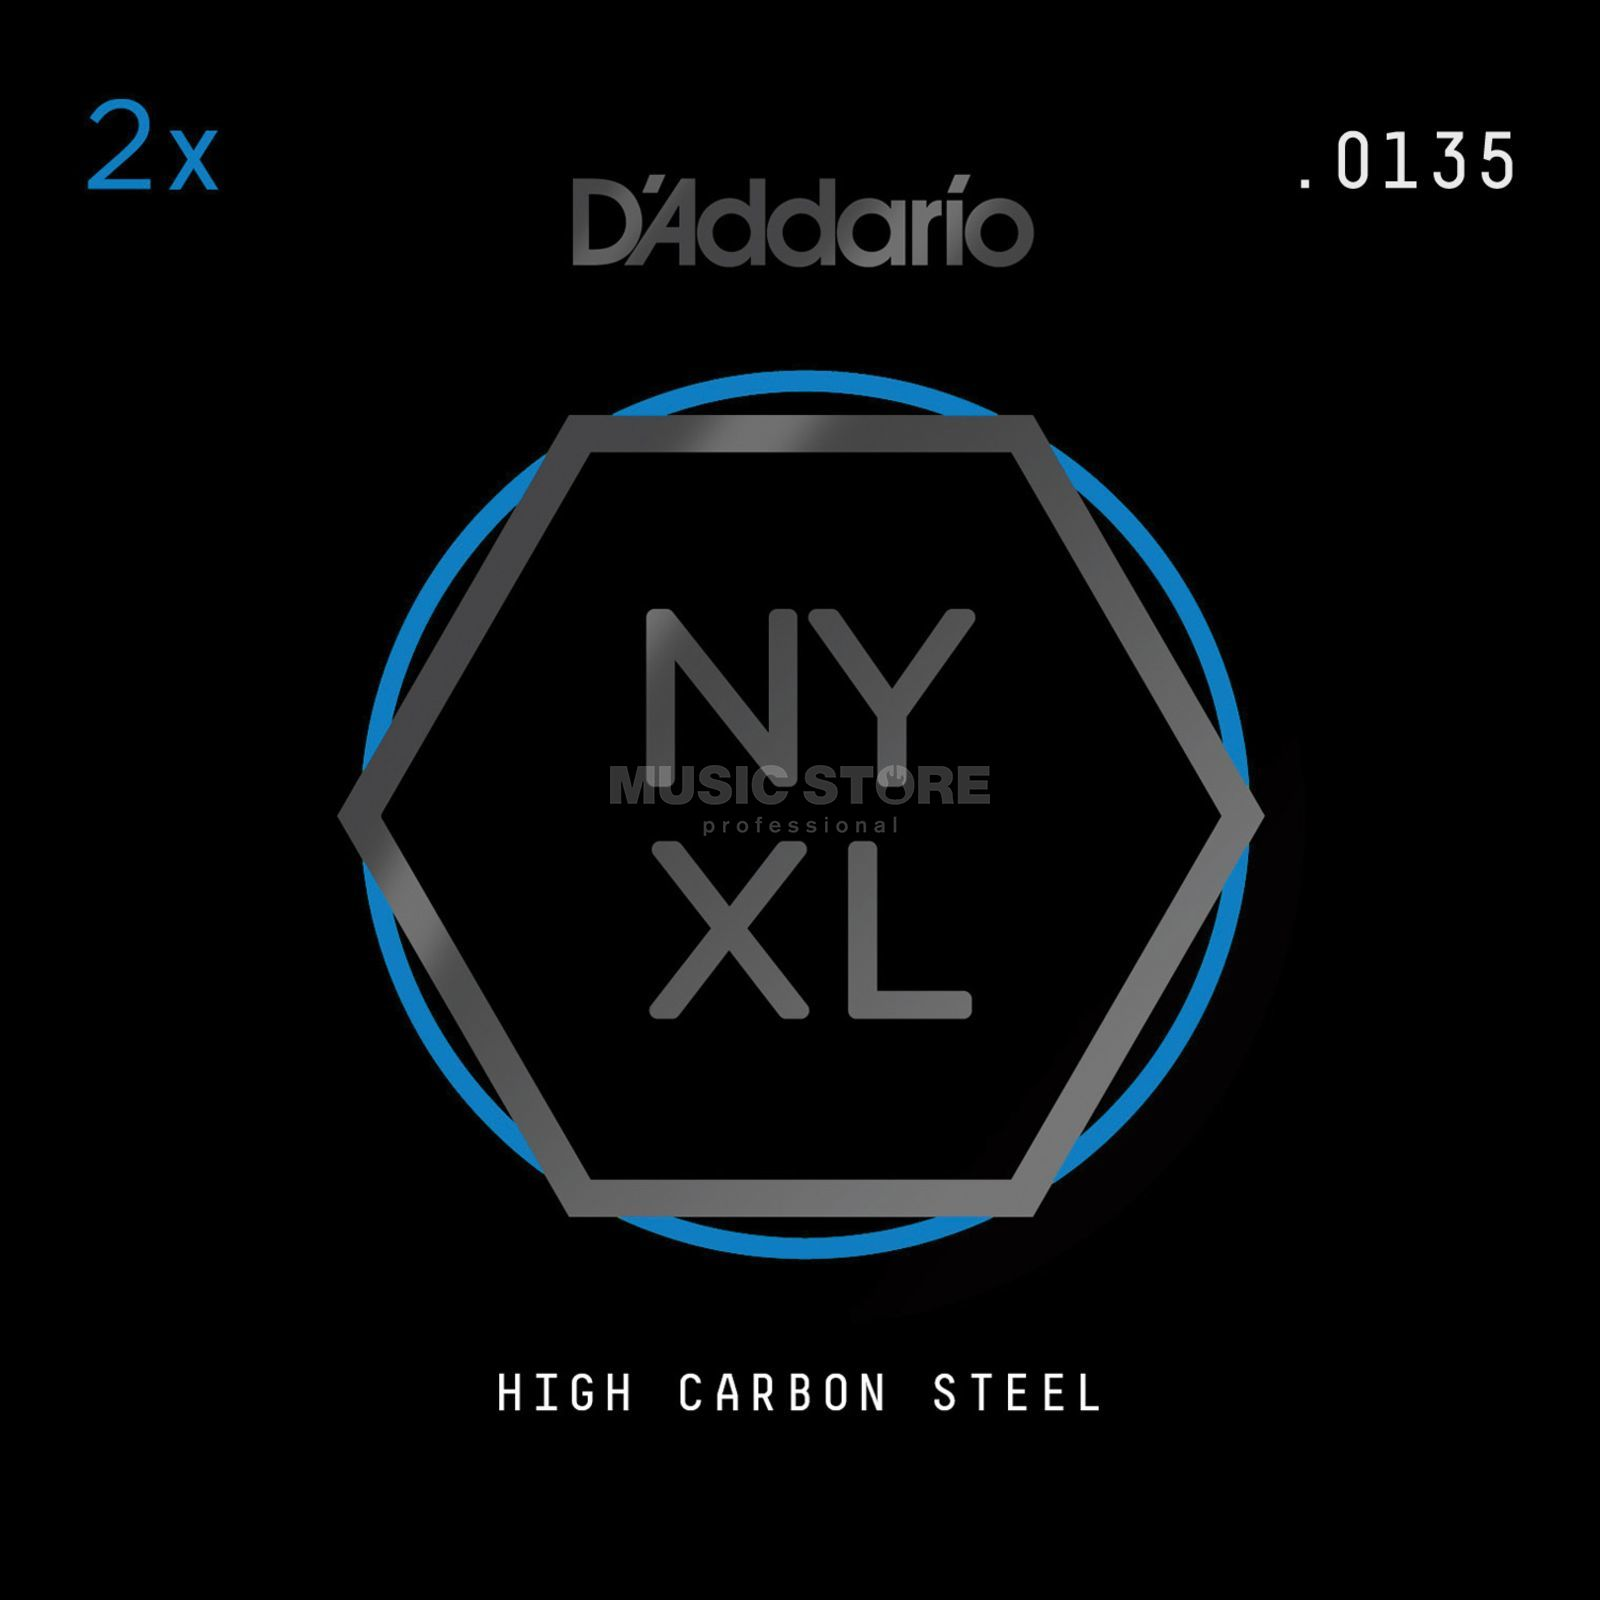 D'Addario NYPL0135 Plain Single String 2-Pack - High Carbon Steel Product Image